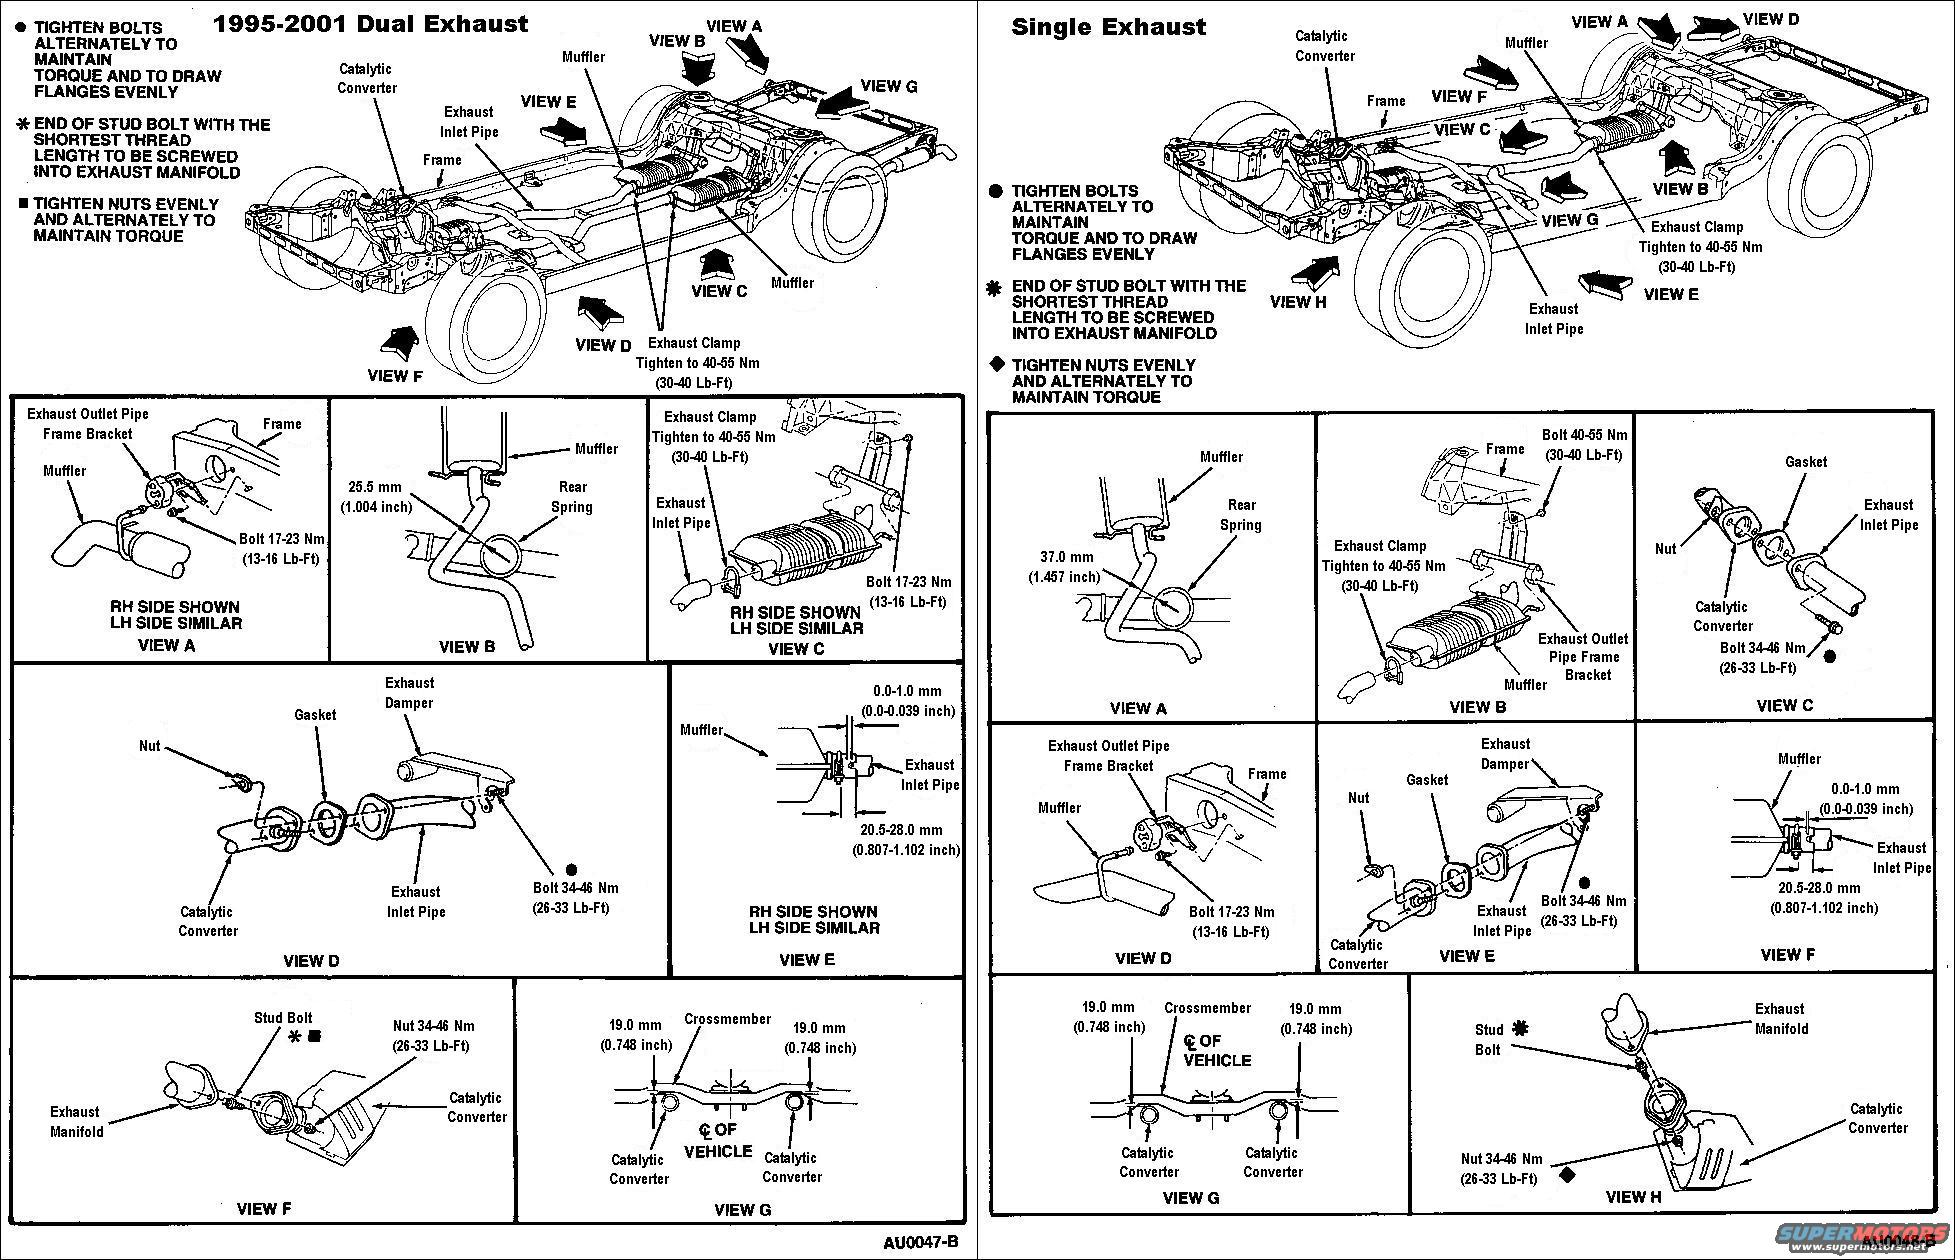 1996 Mercury Grand Marquis Engine Diagram Wiring Diagram Corsa A Corsa A Pasticceriagele It